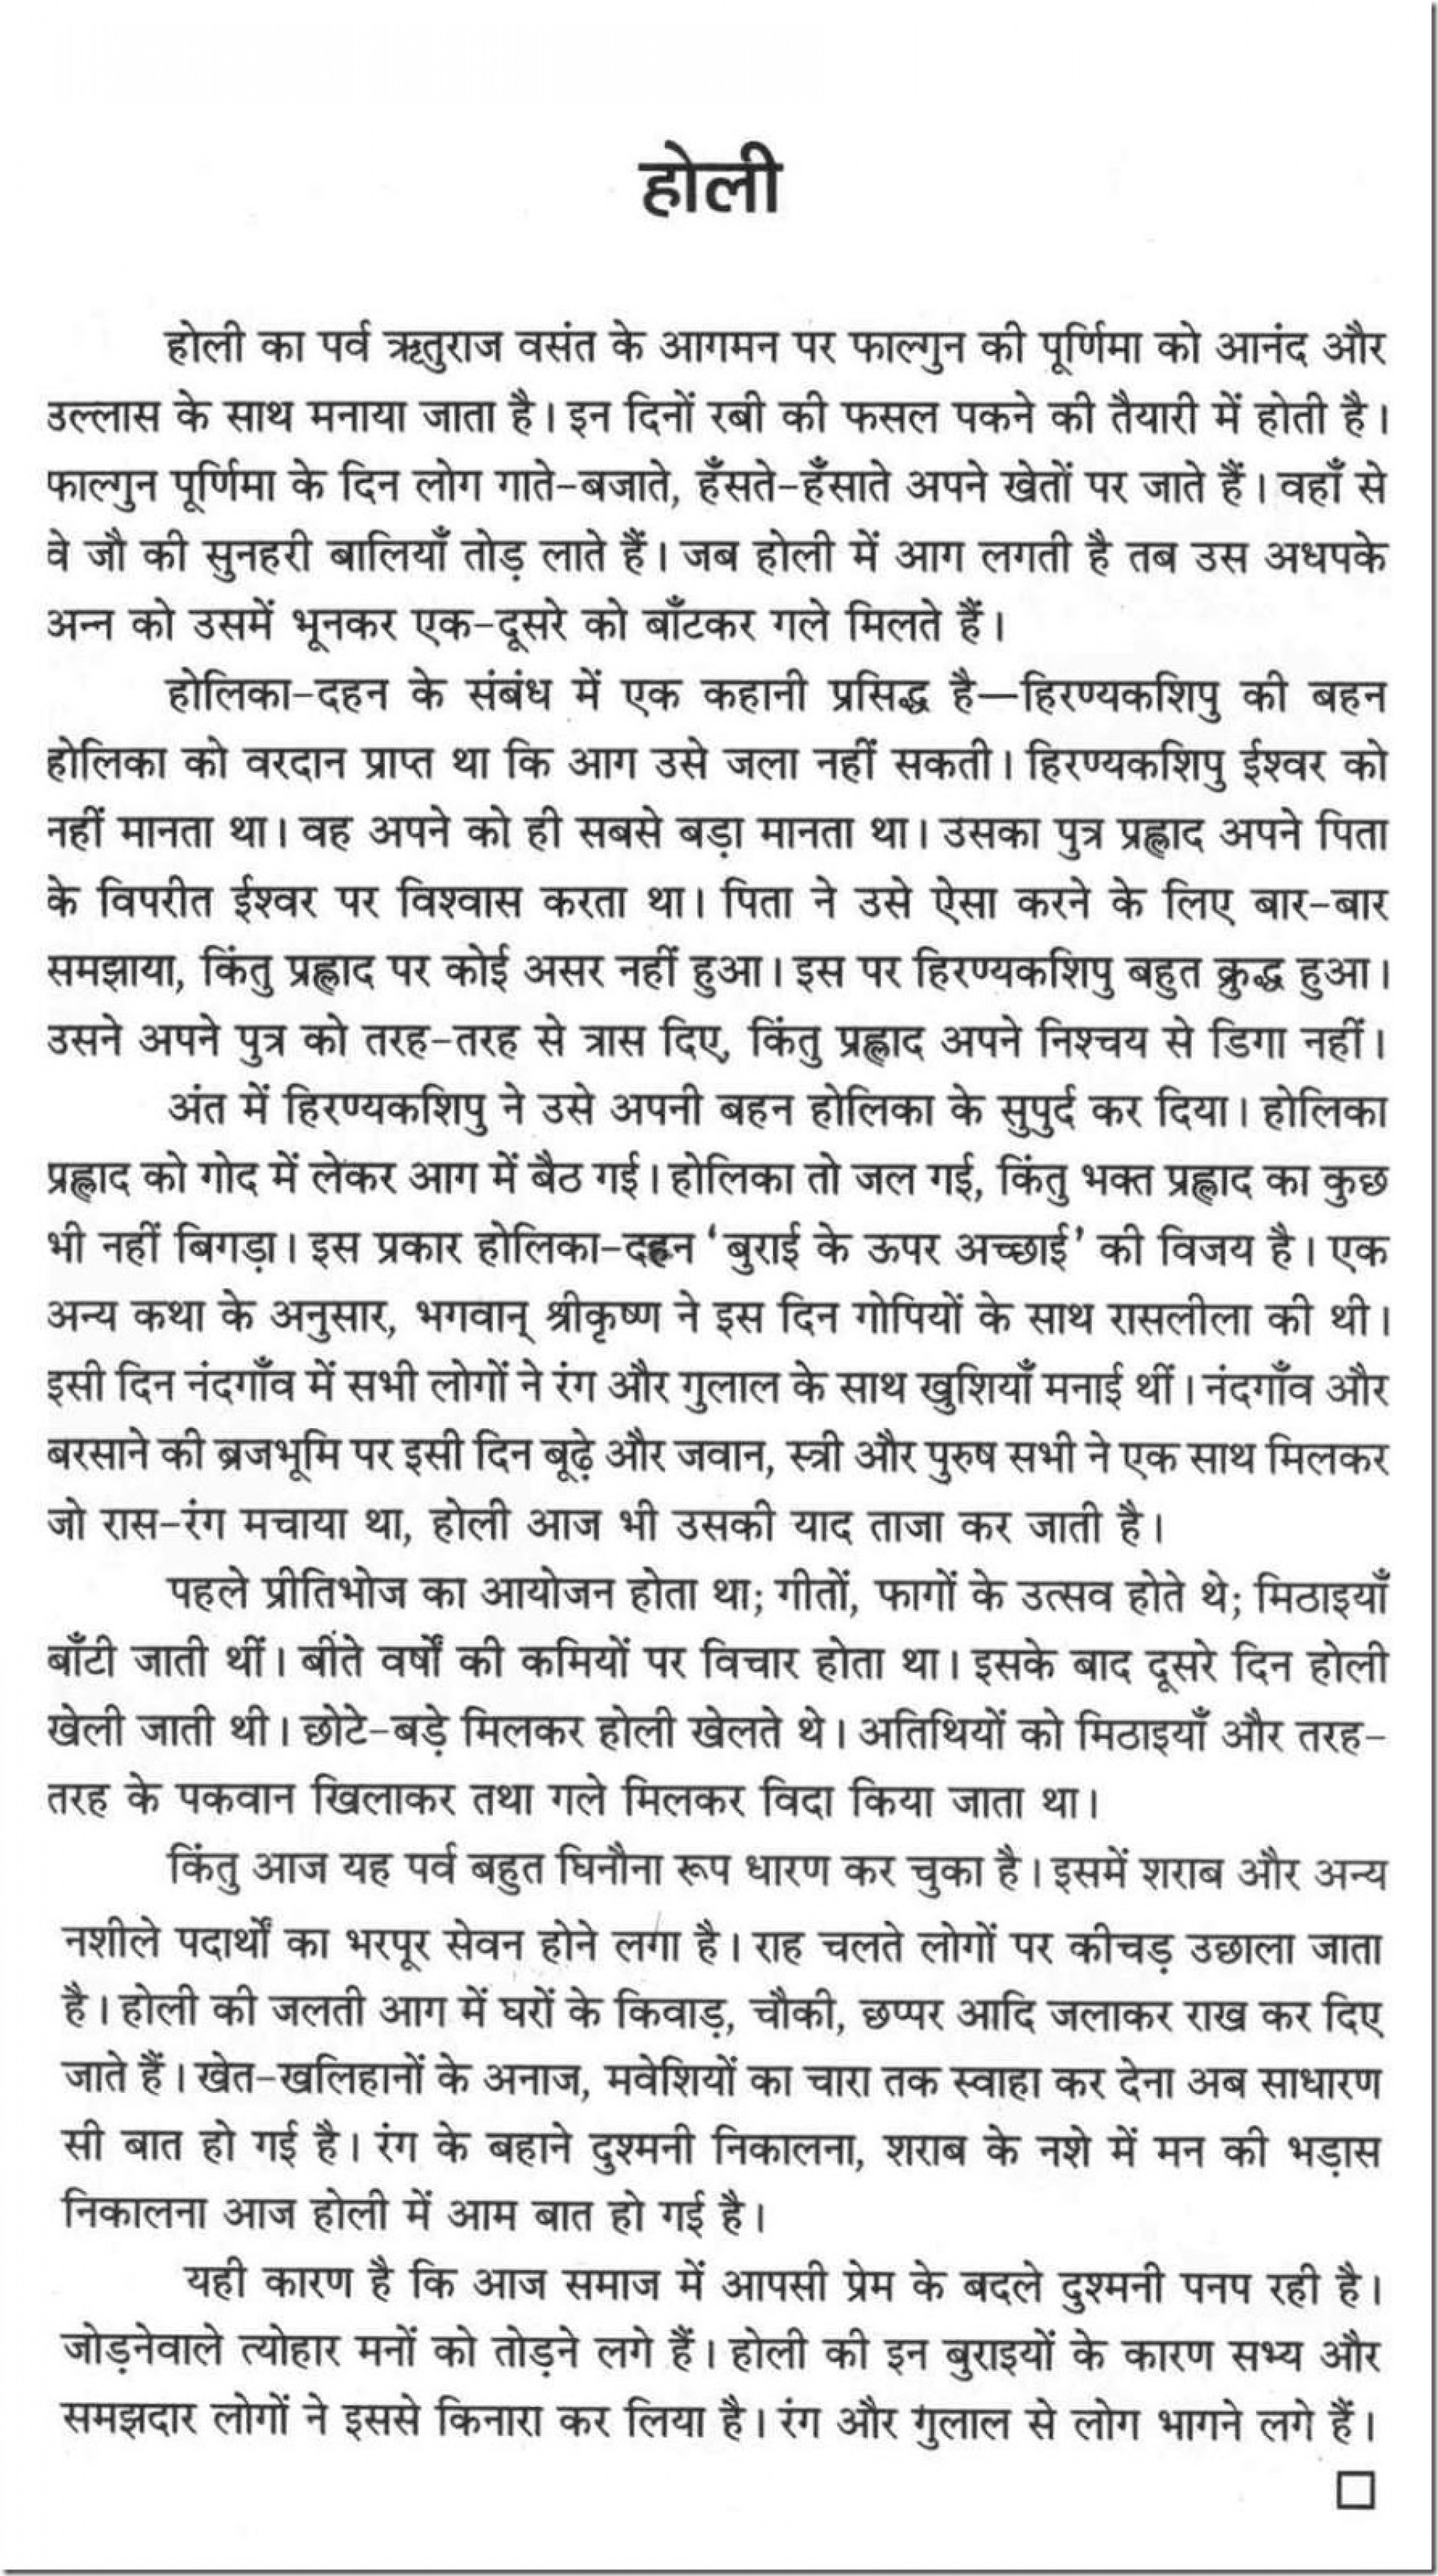 006 Cleanliness Essay In Hindi Example Sensational Is Godliness School 1920